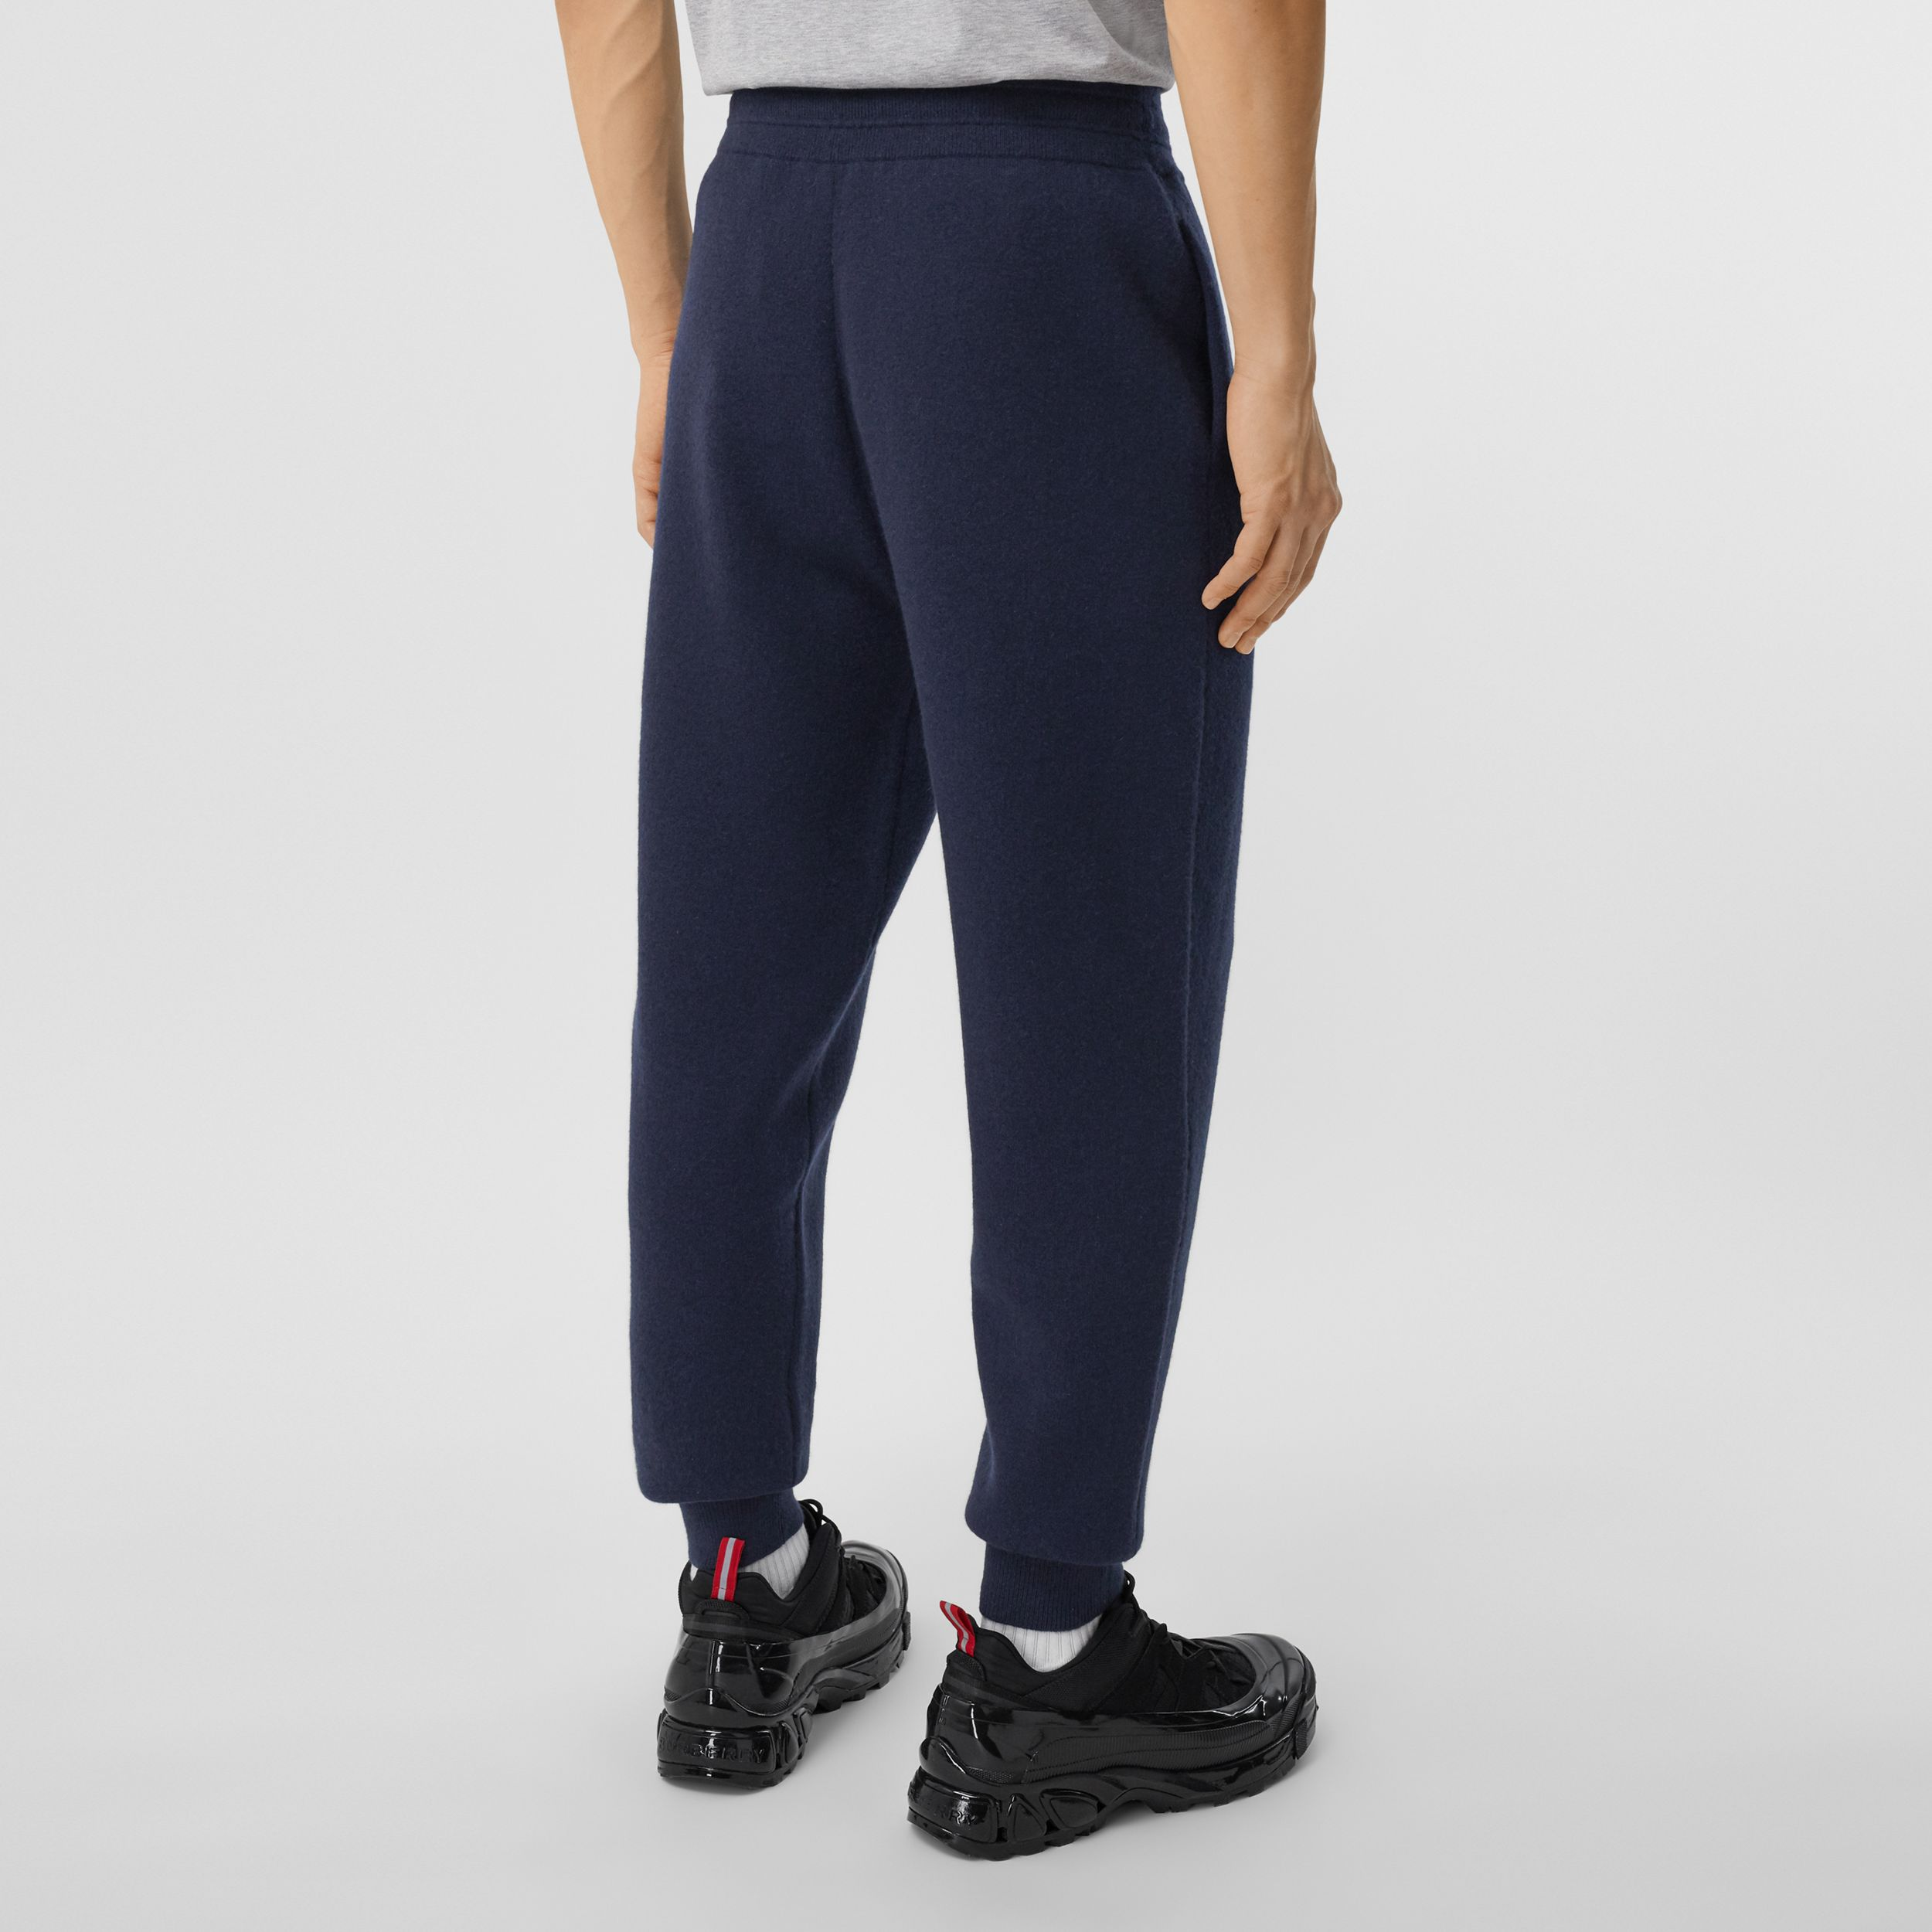 Monogram Motif Cashmere Blend Jogging Pants in Navy - Men | Burberry - 3